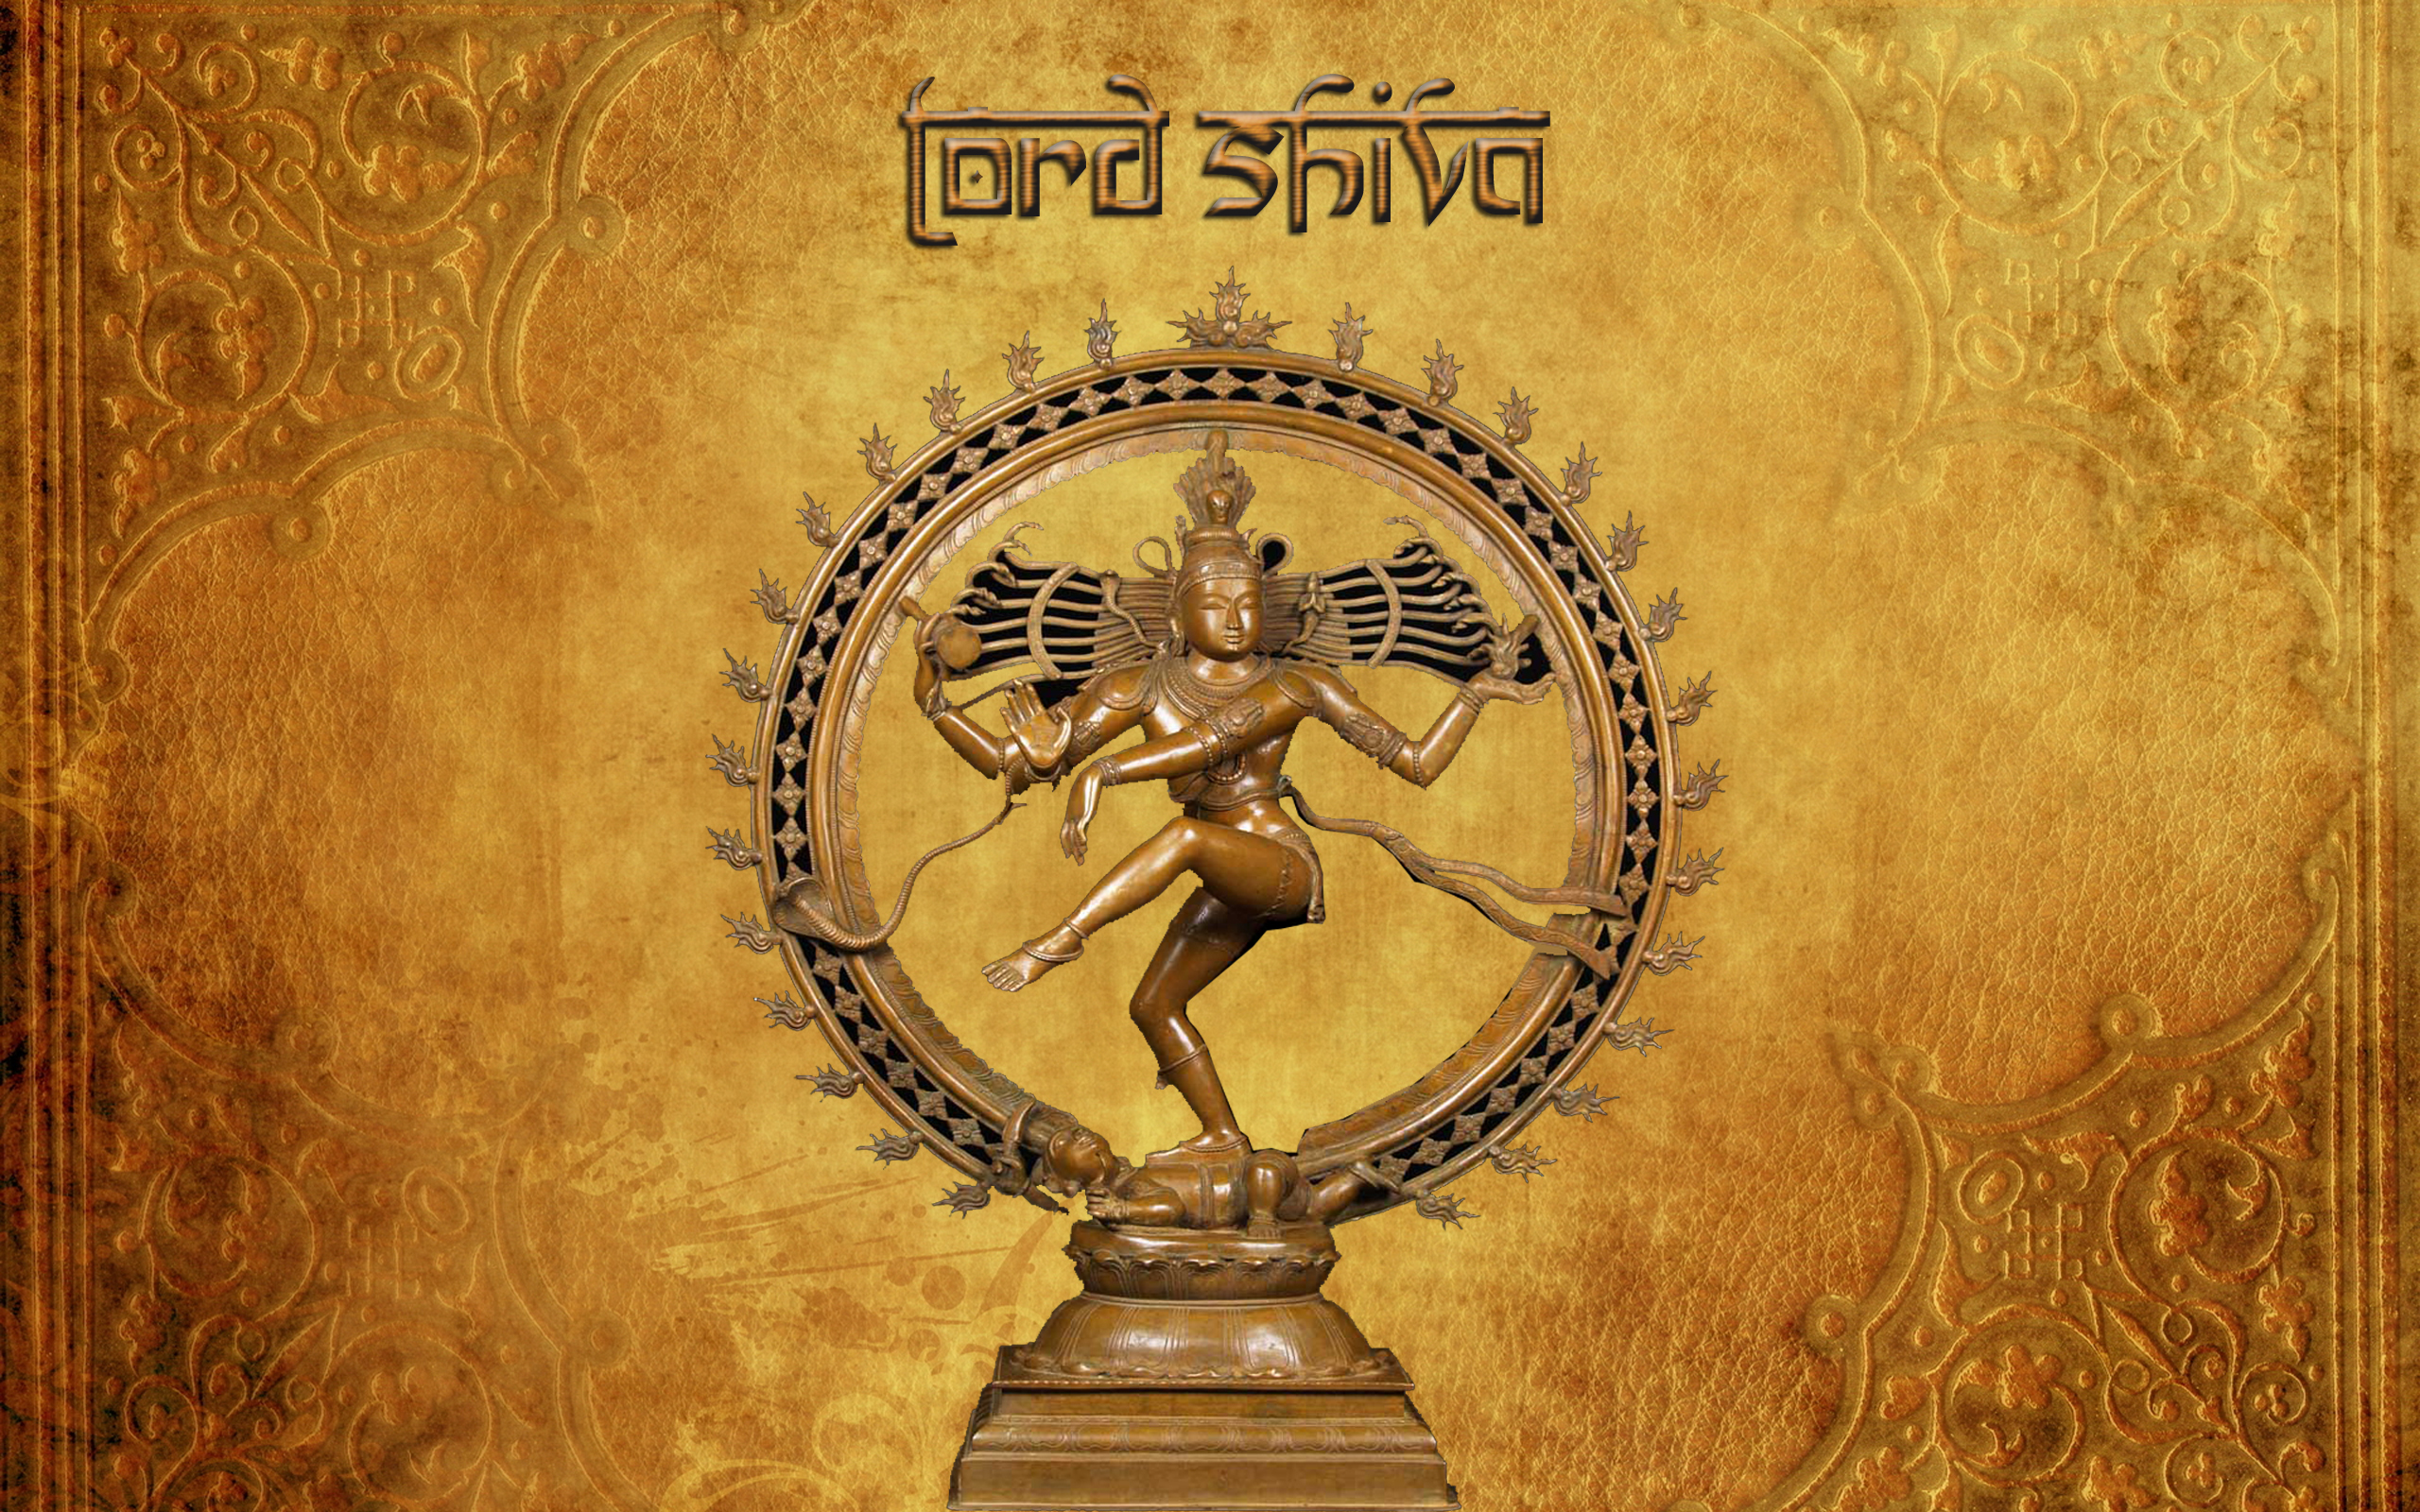 Hd wallpaper shiva - Shiva Hd Wallpapers 1080p Pictures Images Hd